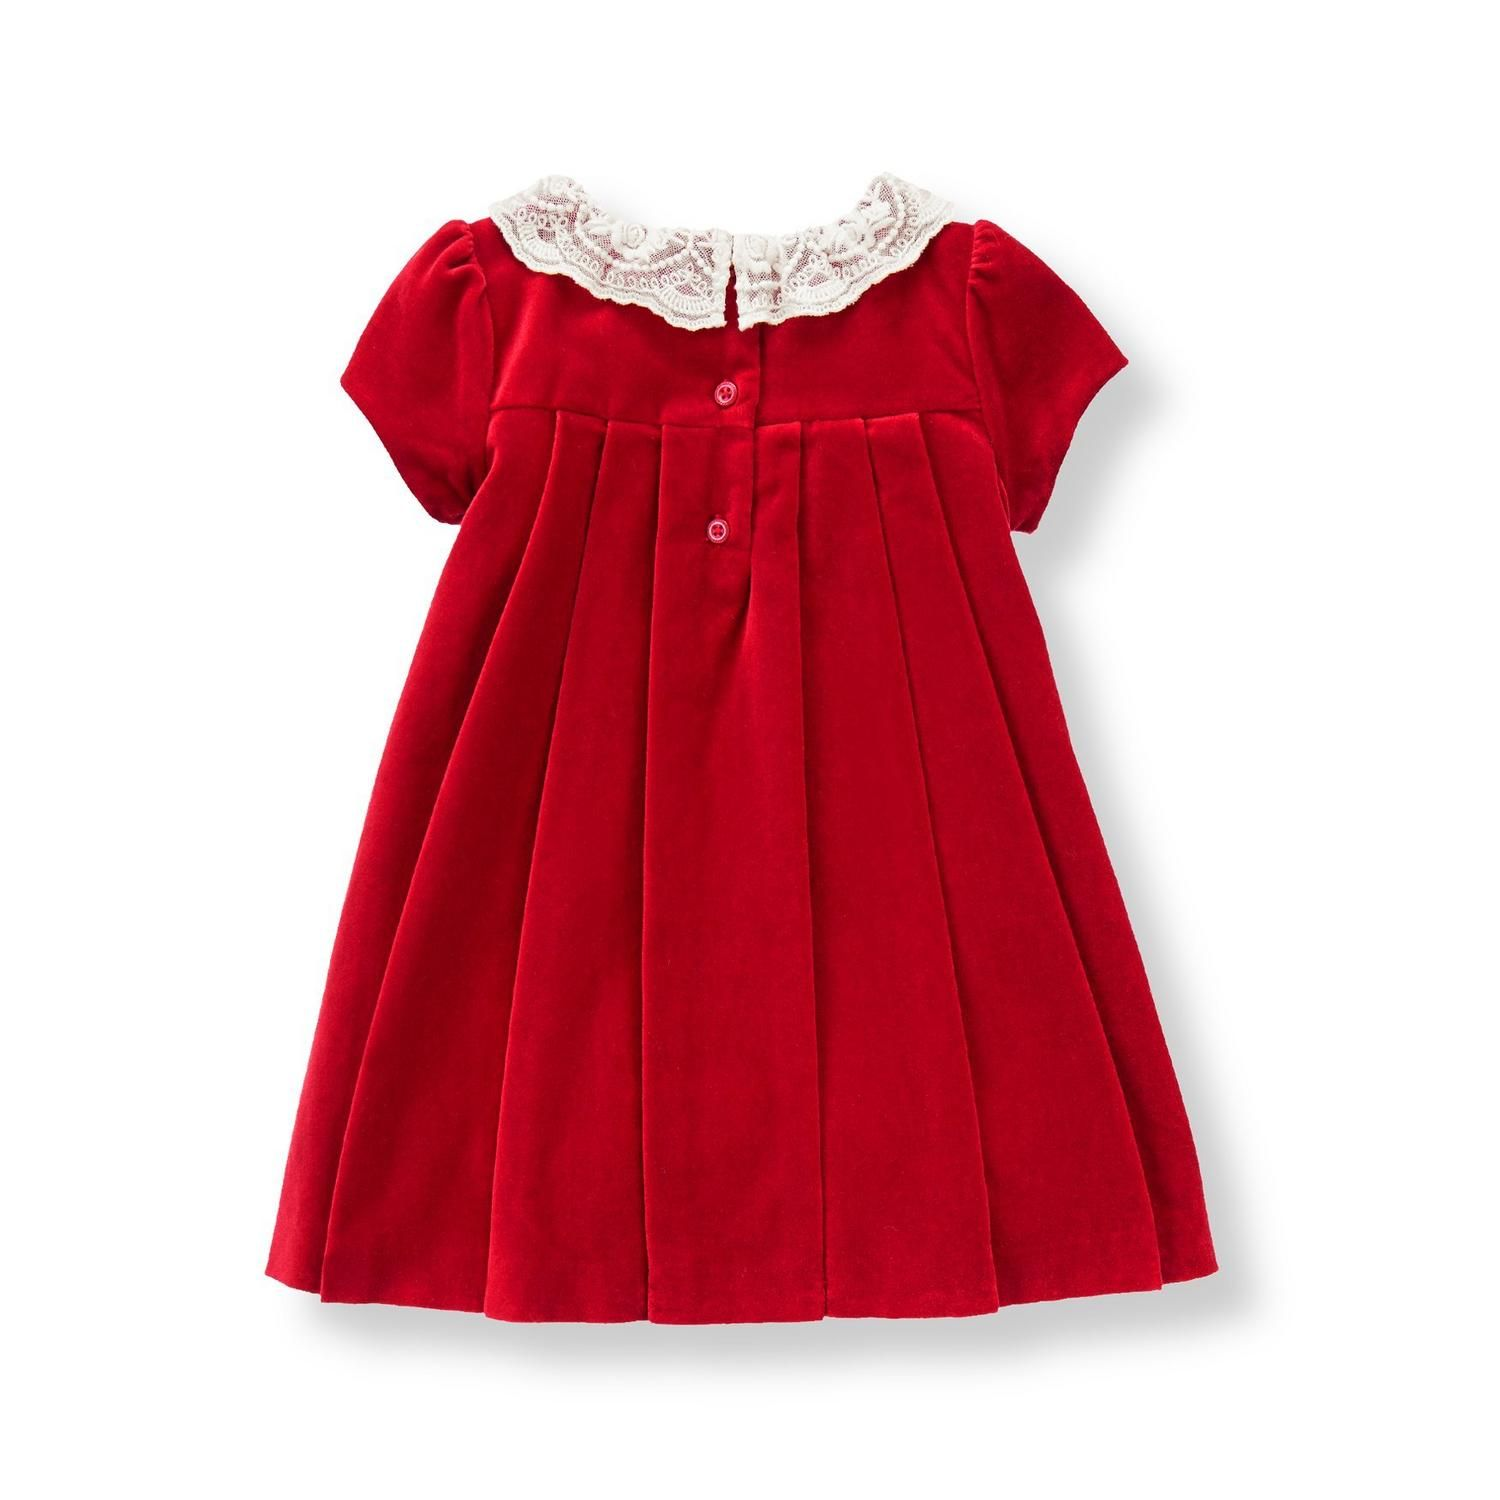 Newborn Holiday Red Lace Collar Velveteen Dress by Janie and Jack